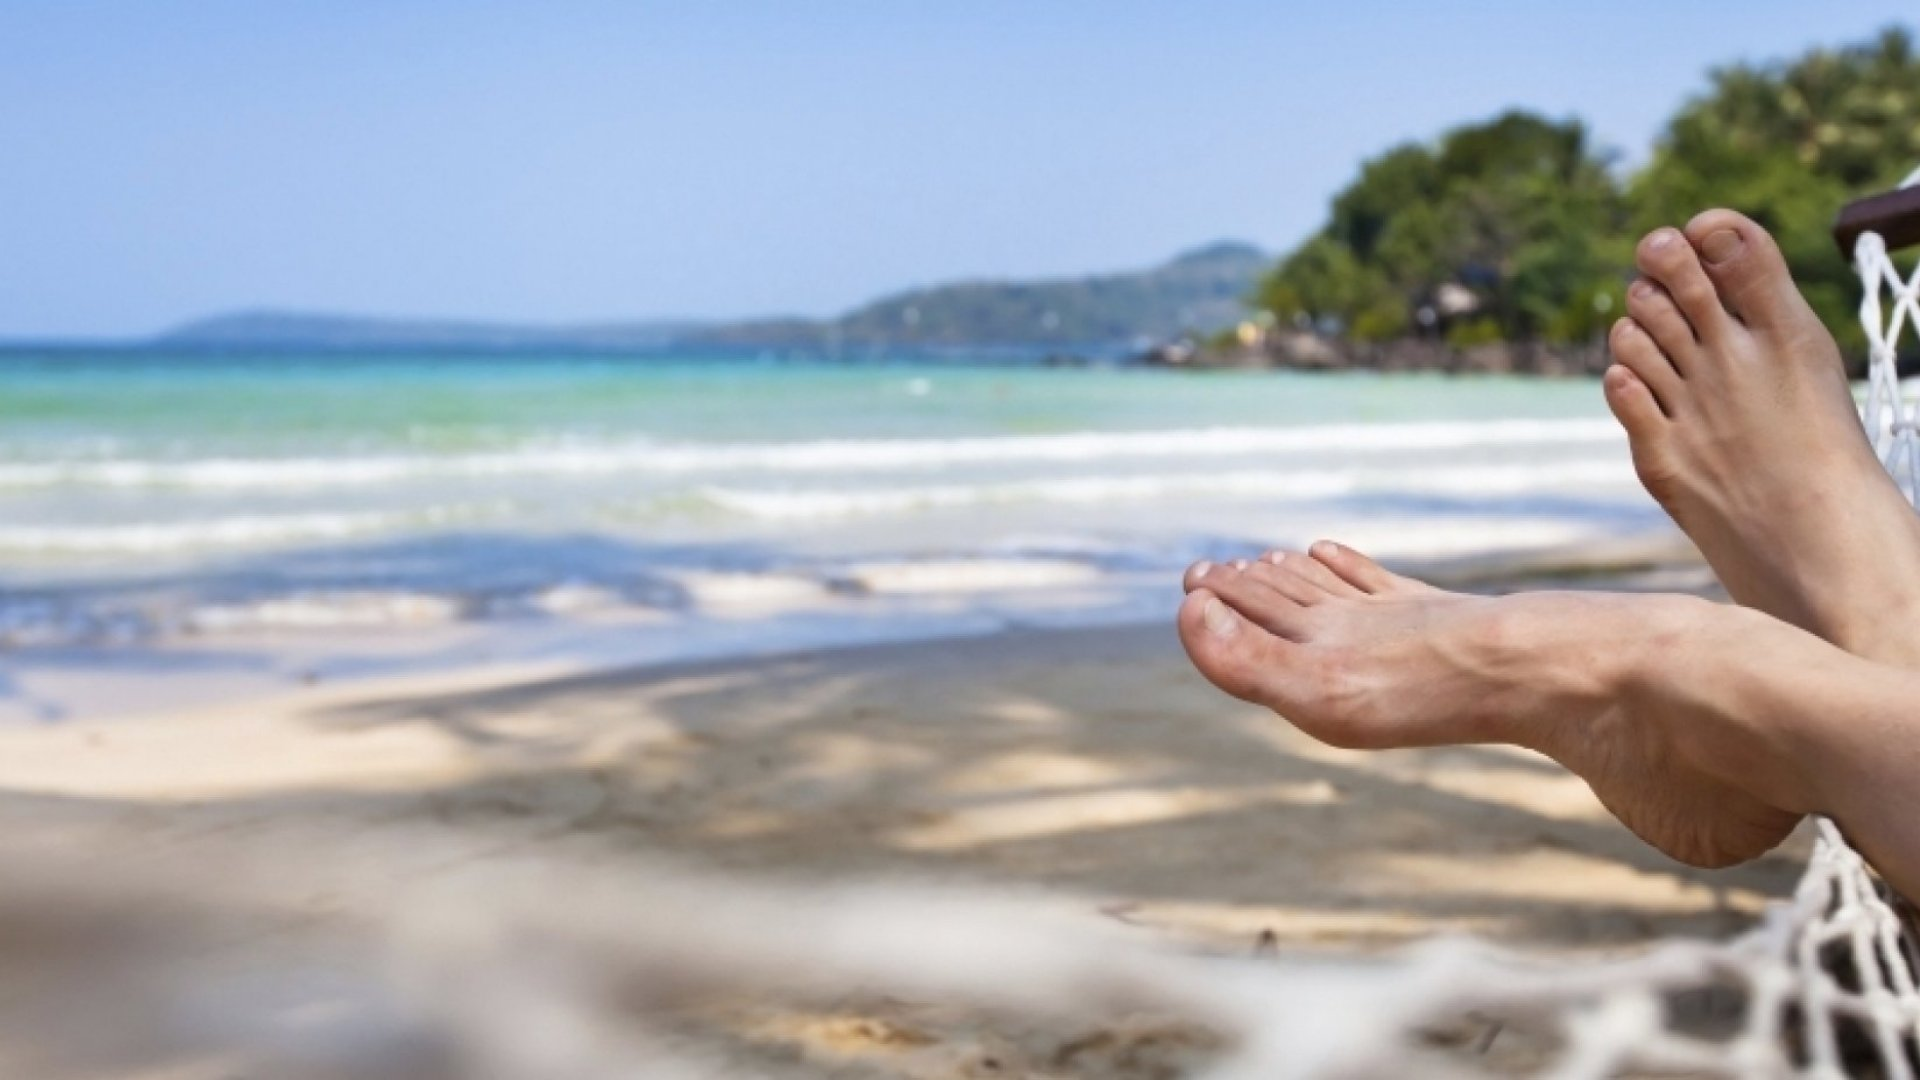 One Company's New Tool for Stress-Free Vacations